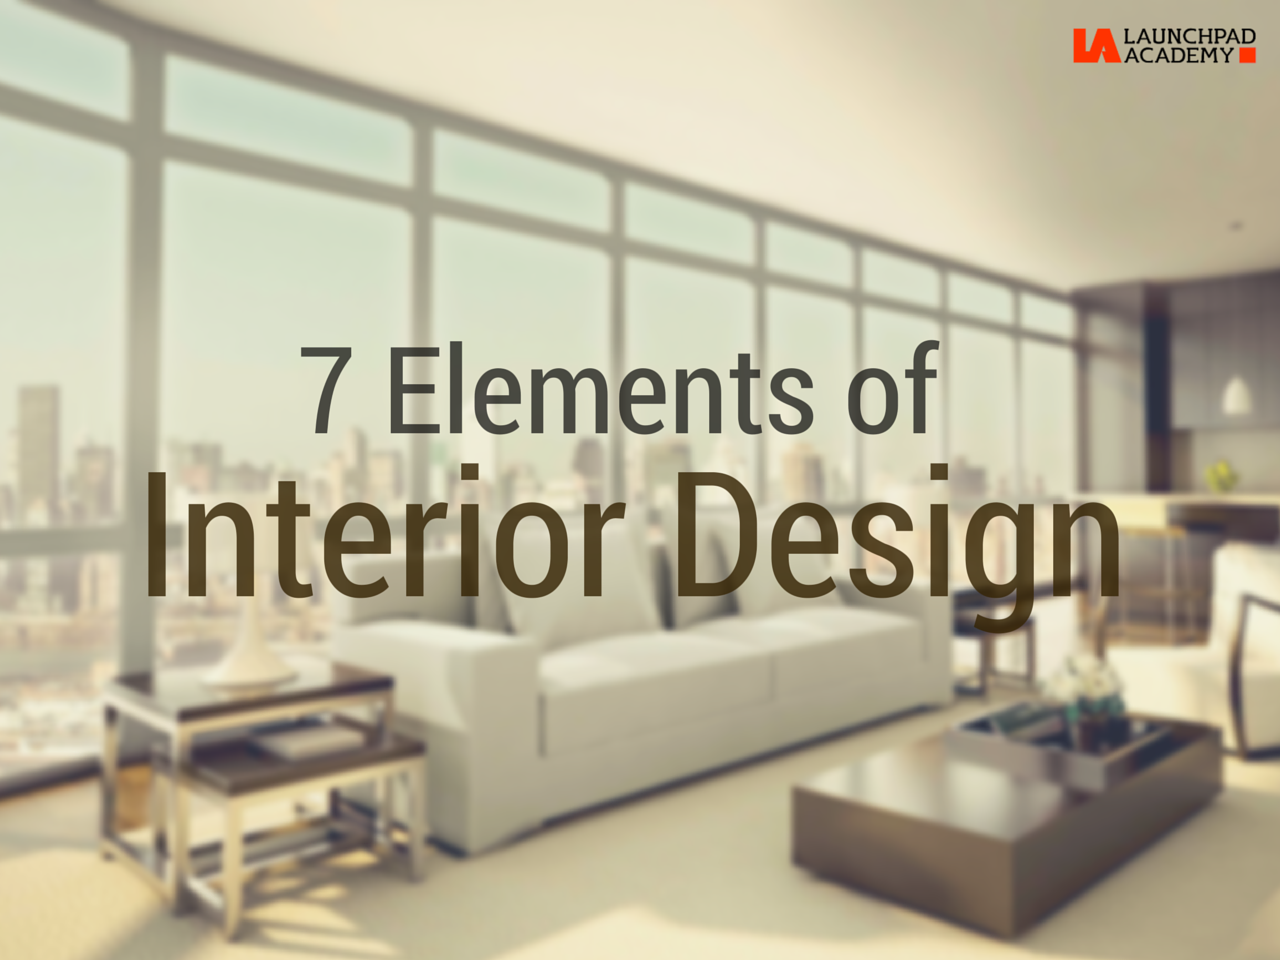 18 elements of design interior design images design